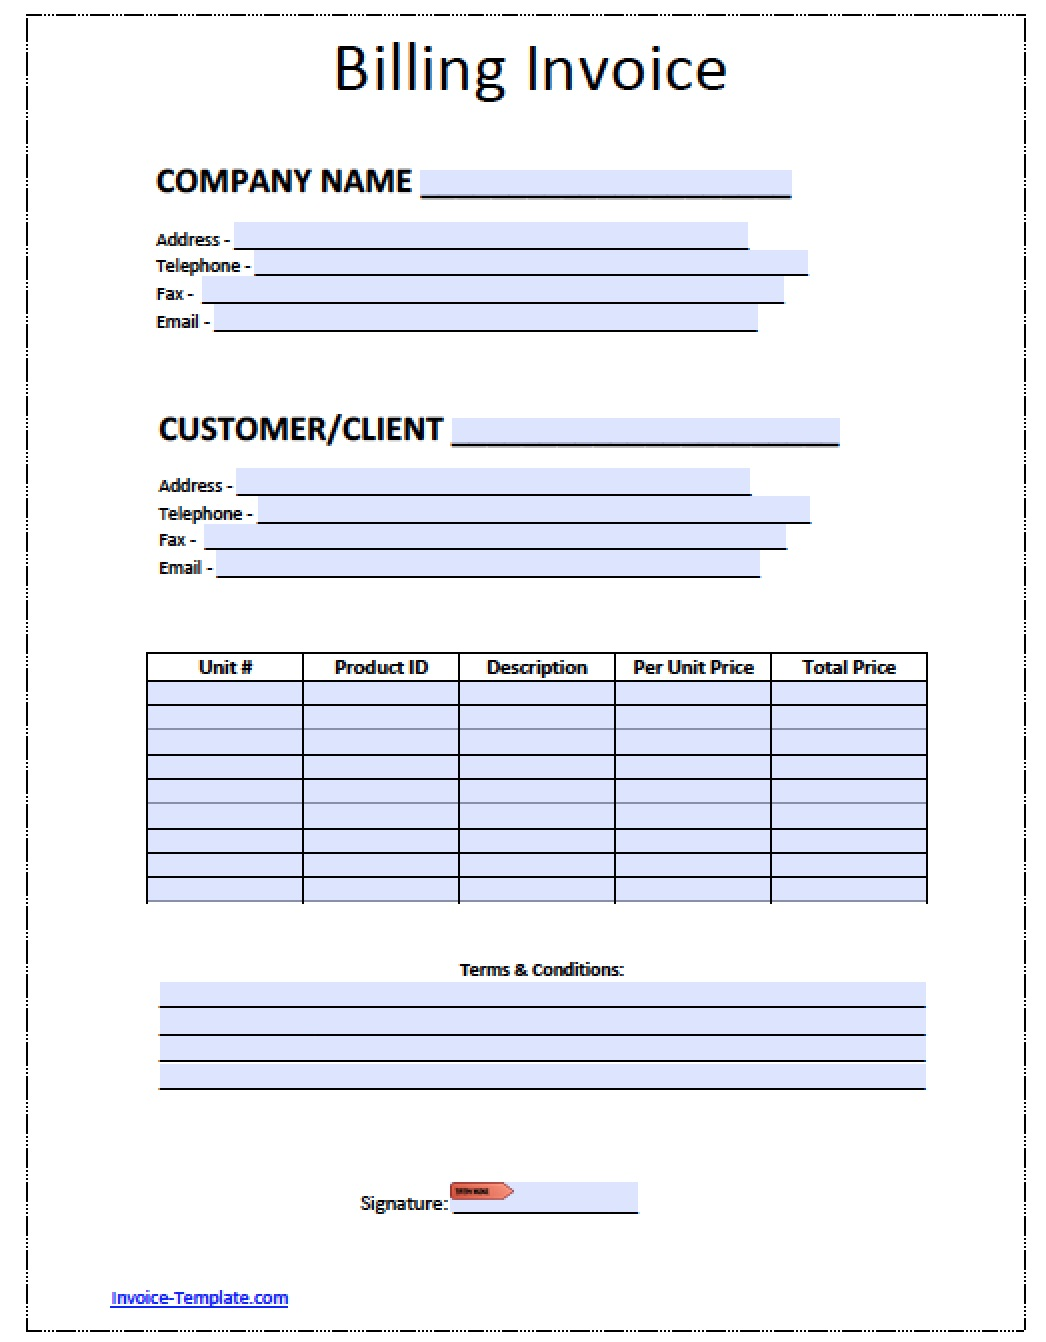 Ebitus  Remarkable Billing Invoice Invoices Faq U Cloudflare Support Billing  With Lovable Free Billing Invoice Template  Excel  Pdf  Word Doc  Billing With Delectable Invoice Templates Doc Also Company Invoice Template Word In Addition Paypal Payment Invoice And Invoice Template Uk Excel As Well As Aliexpress Print Invoice Additionally Template Proforma Invoice From Happytomco With Ebitus  Lovable Billing Invoice Invoices Faq U Cloudflare Support Billing  With Delectable Free Billing Invoice Template  Excel  Pdf  Word Doc  Billing And Remarkable Invoice Templates Doc Also Company Invoice Template Word In Addition Paypal Payment Invoice From Happytomco